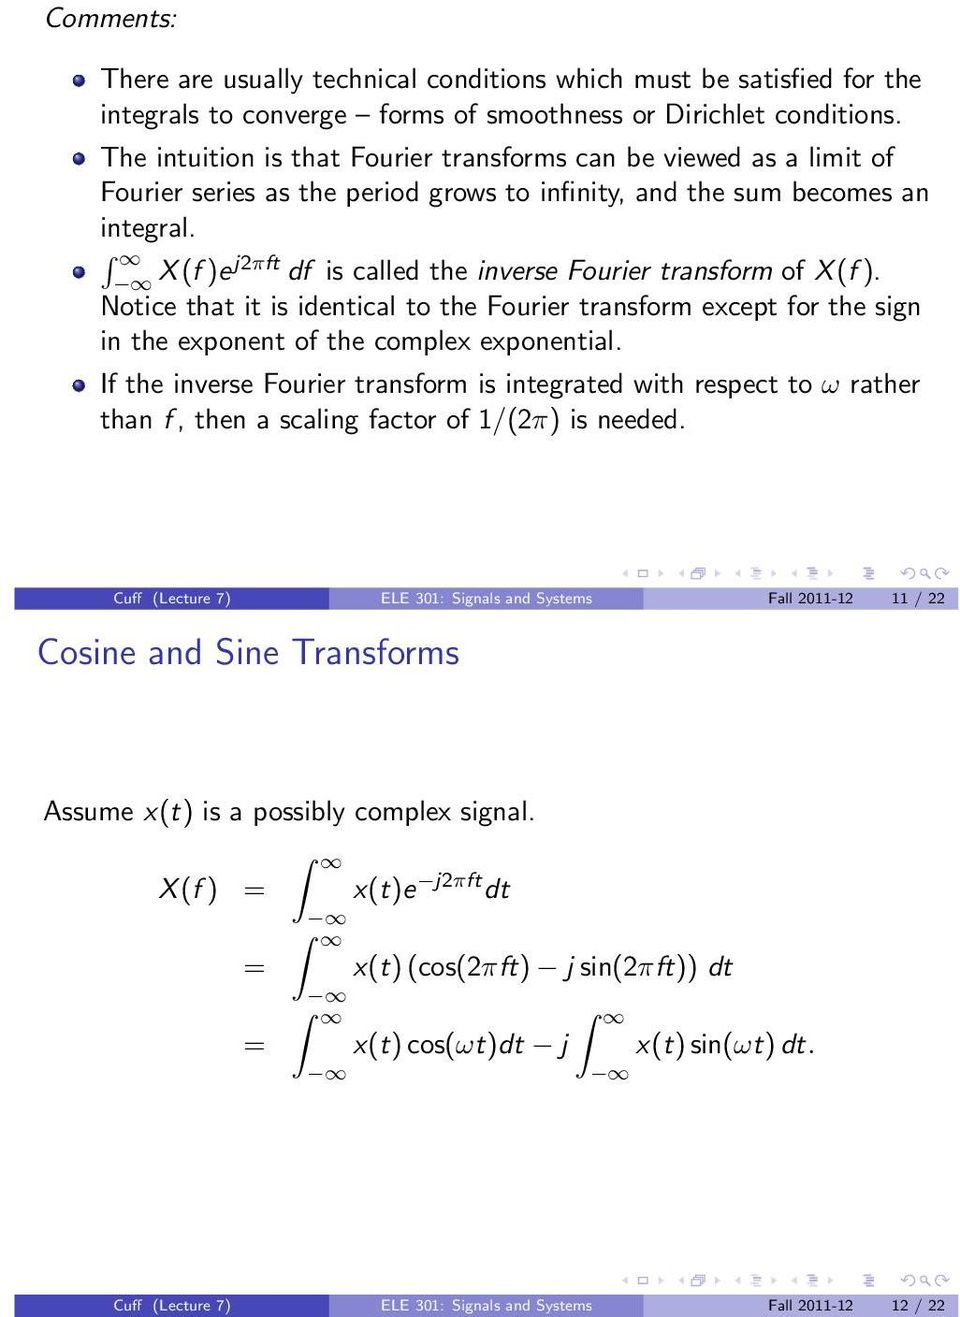 X (f )ej2πft df is called the inverse Fourier transform of X (f ). Notice that it is identical to the Fourier transform except for the sign in the exponent of the complex exponential.